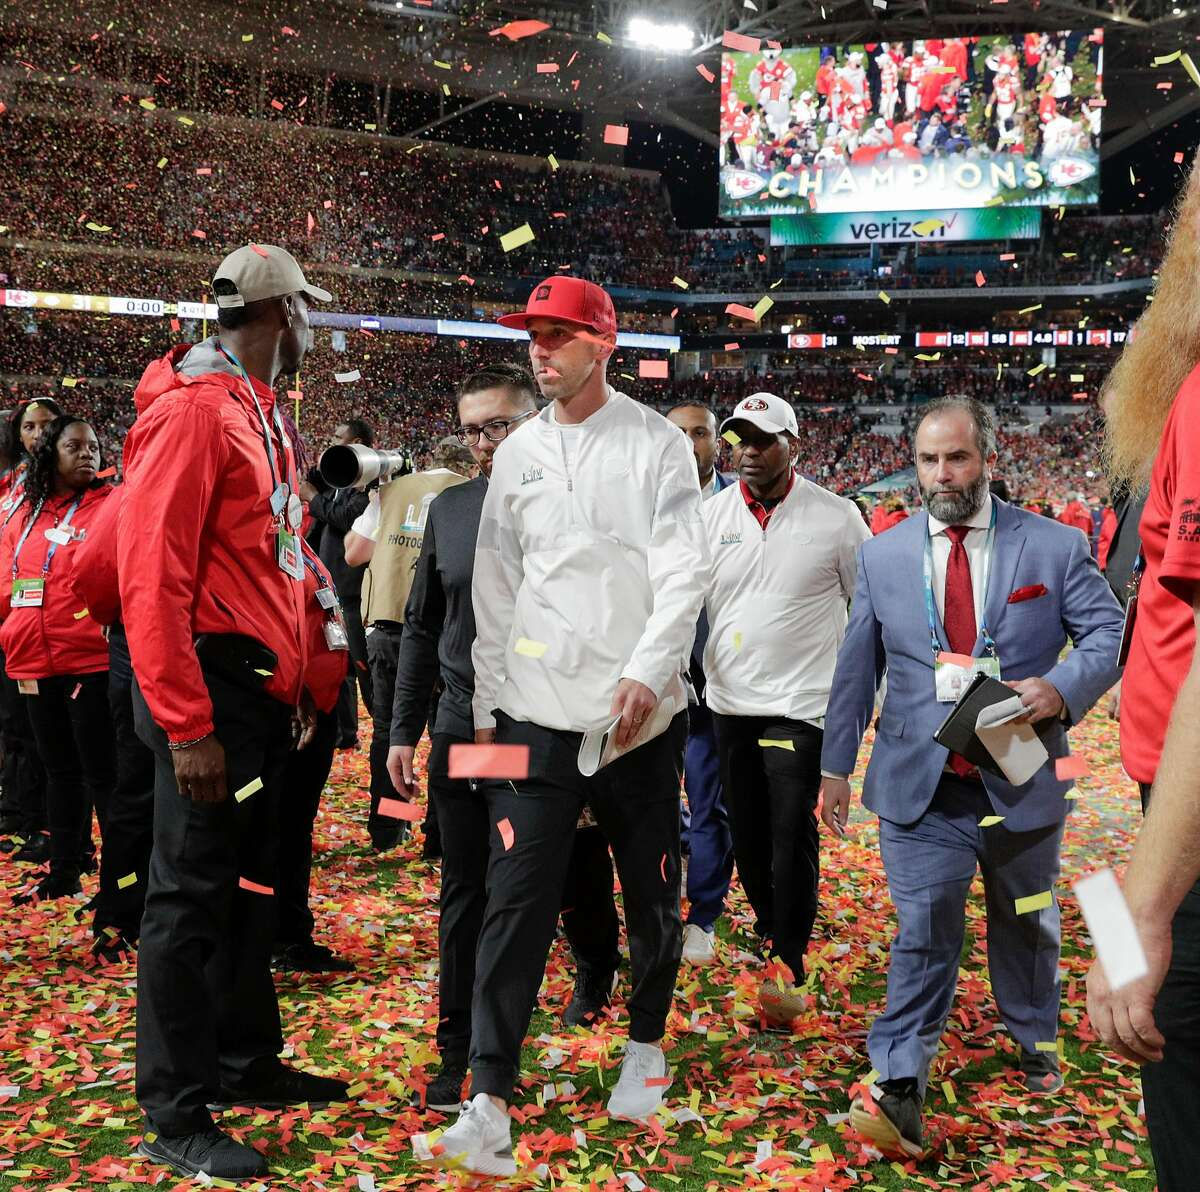 San Francisco 49ers' head coach Kyle Shanahan walks off the field after the team's 31 to 20 loss in Super Bowl LIV between the San Francisco 49ers and the Kansas City Chiefs at Hard Rock Stadium on Sunday, Feb. 2, 2020 in Miami Gardens, Fla.